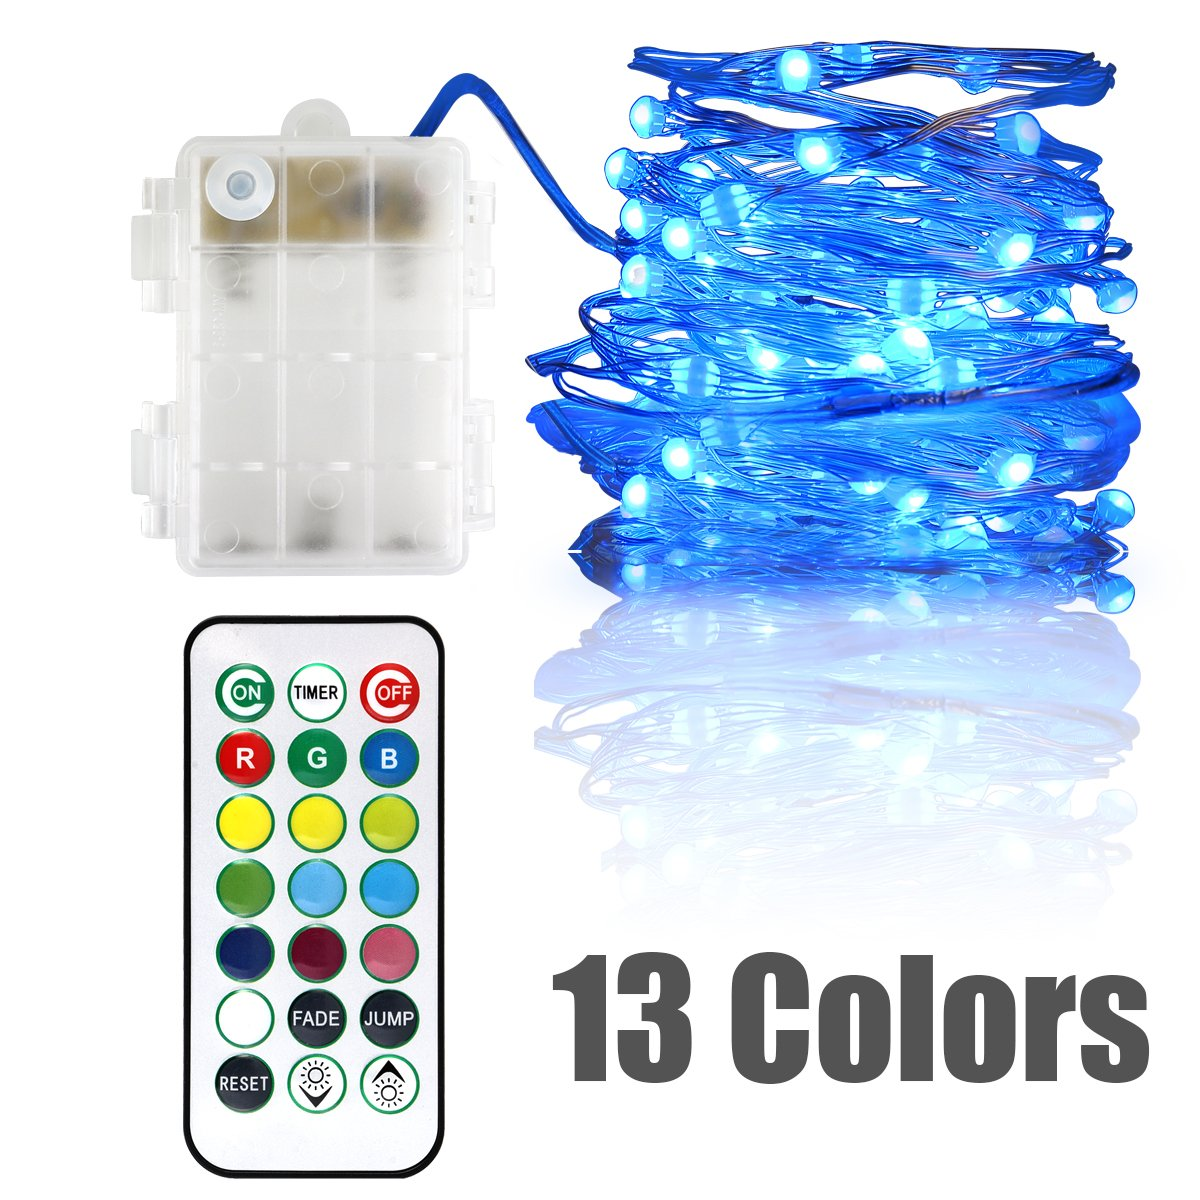 Flashing Led Battery Powered String Lights Twinkle Led Lights Color Changing Fairy Lights for Bedroom Firefly Fairy String Lights Flashing Remote Control Waterproof 13 Colors 16 ft 50 leds